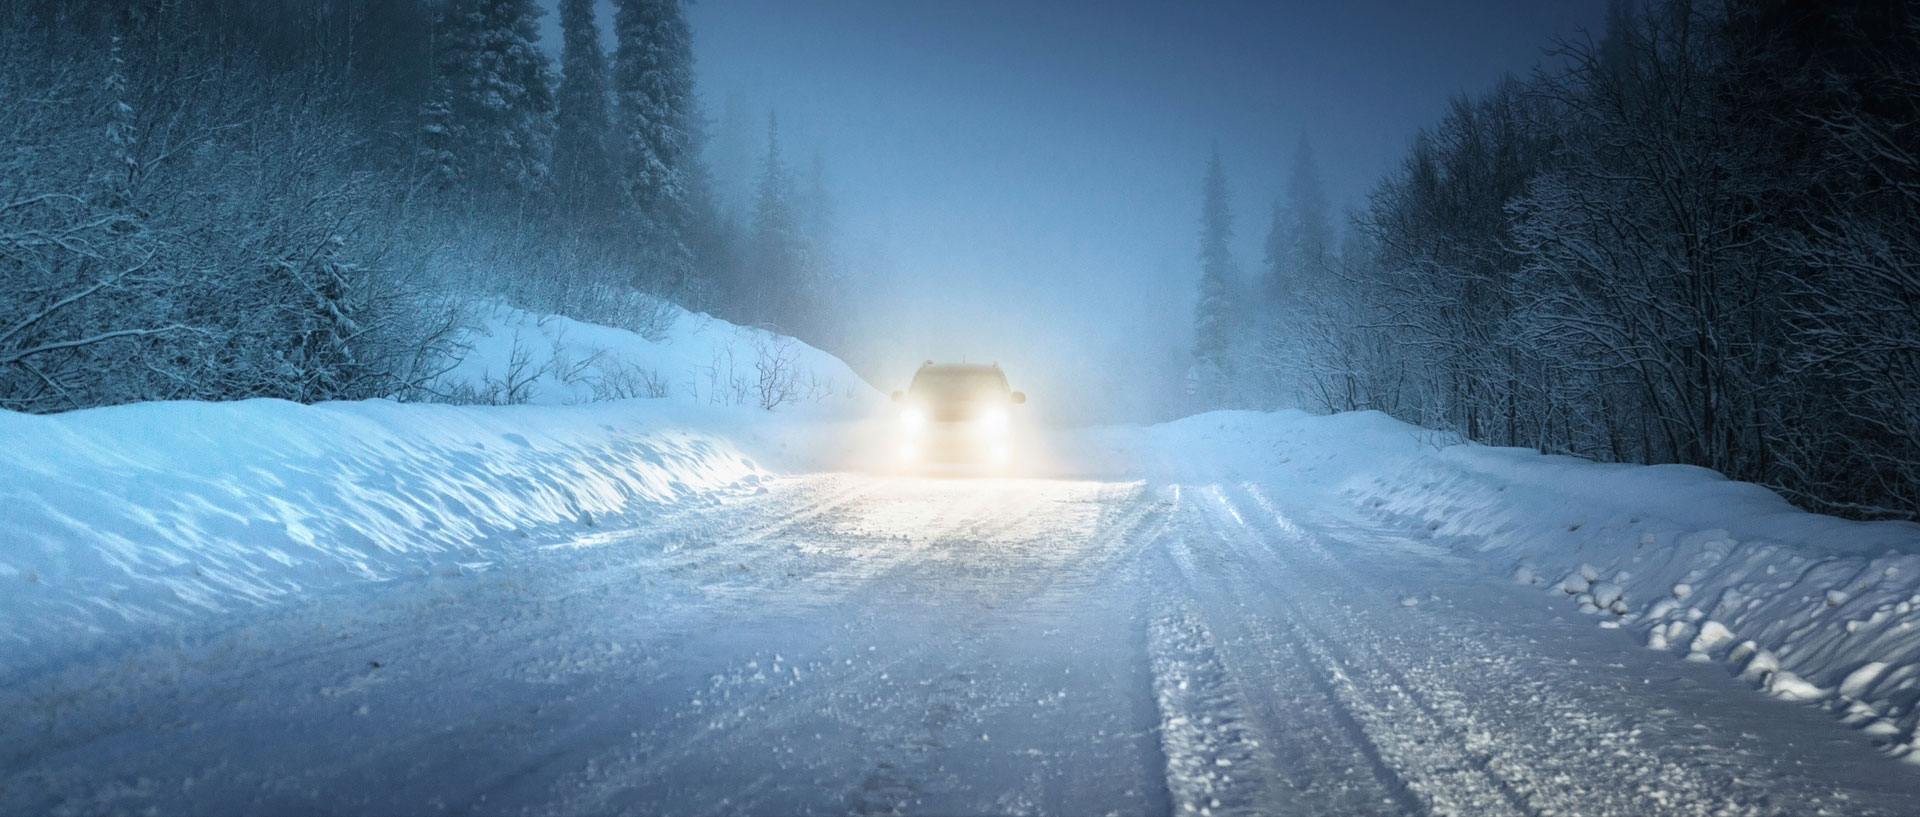 Best Snow Tires For Trucks >> New Cooper Snow Tires Put to the Test - Consumer Reports